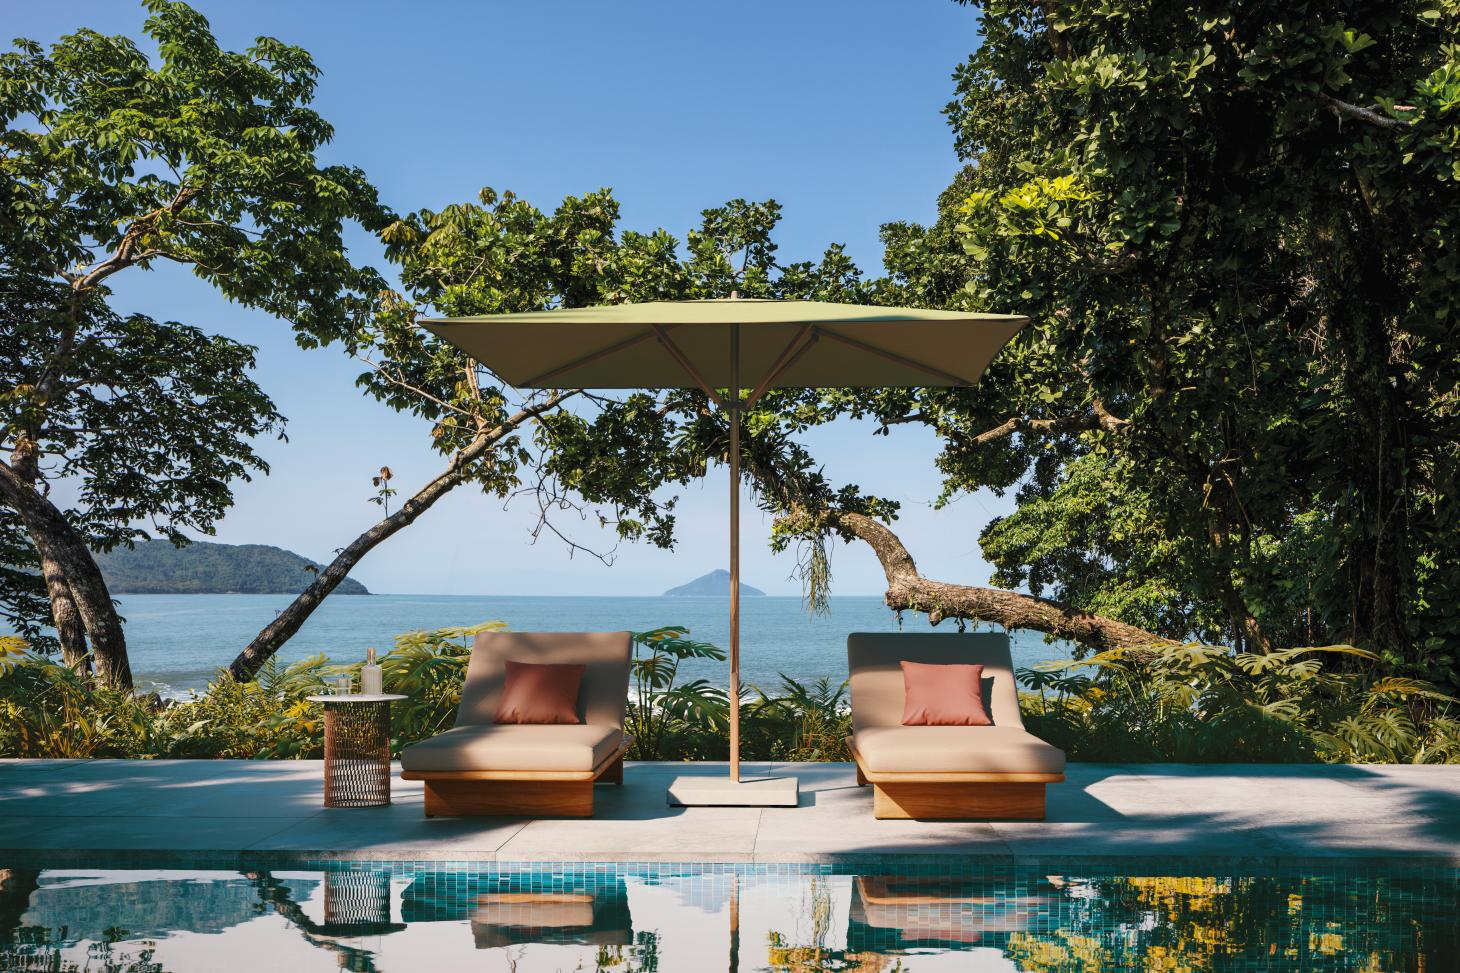 Orange Parasol by Kettal photographed poolside with countryside on the background